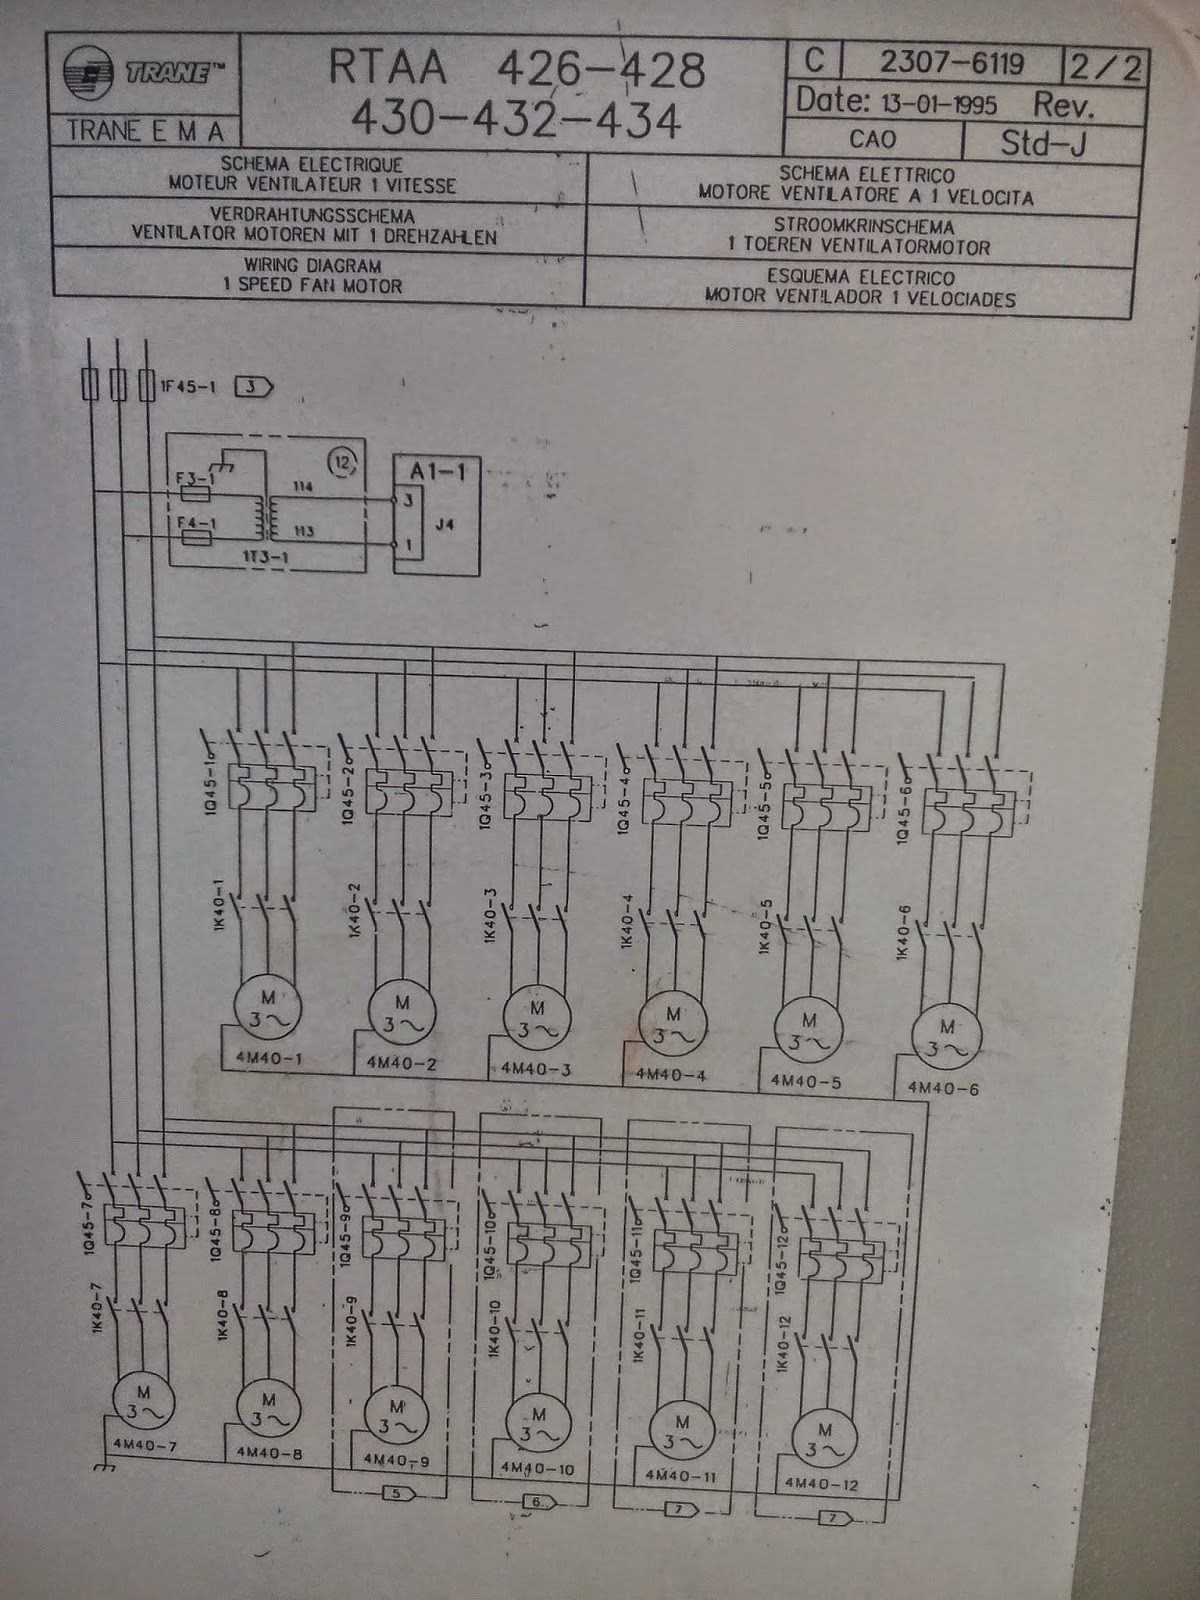 Trane Chiller Wiring Diagram | Wiring Library